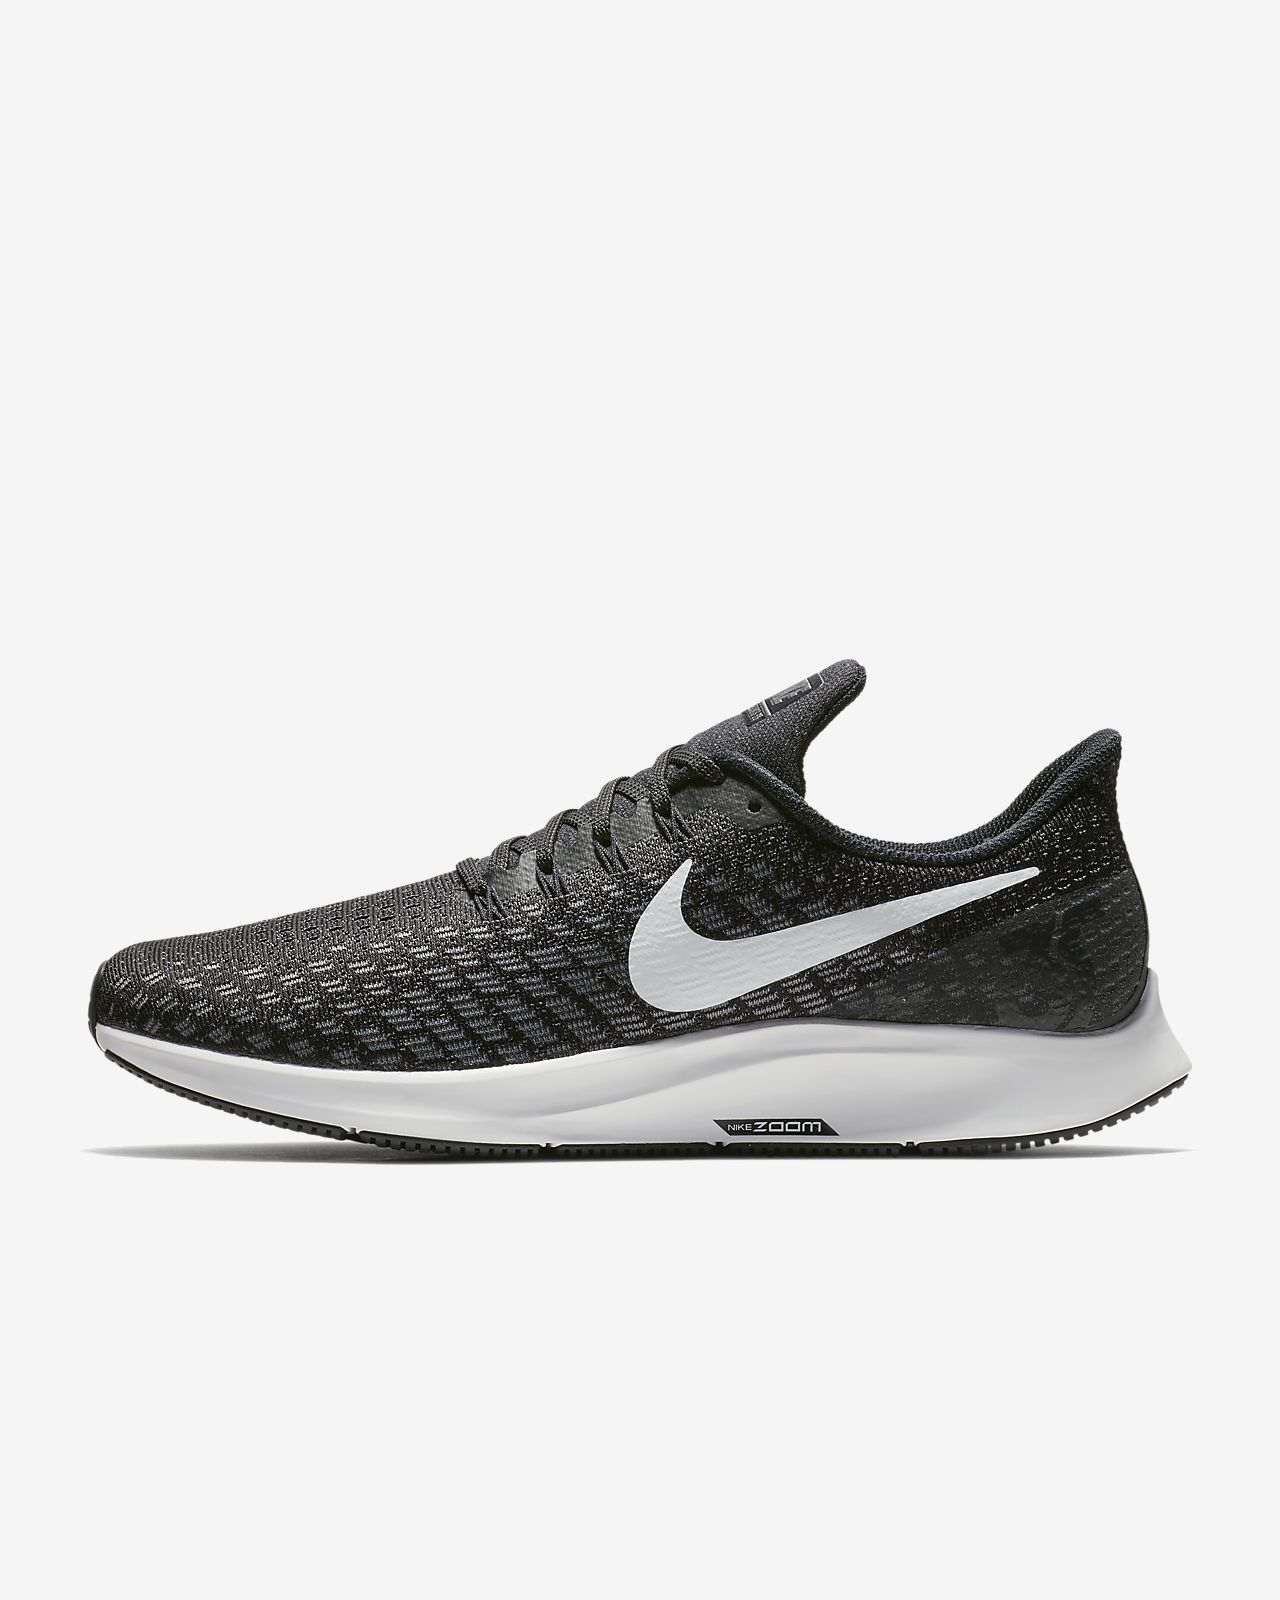 low priced d1b1a 1a661 ... Nike Air Zoom Pegasus 35 Herren-Laufschuh